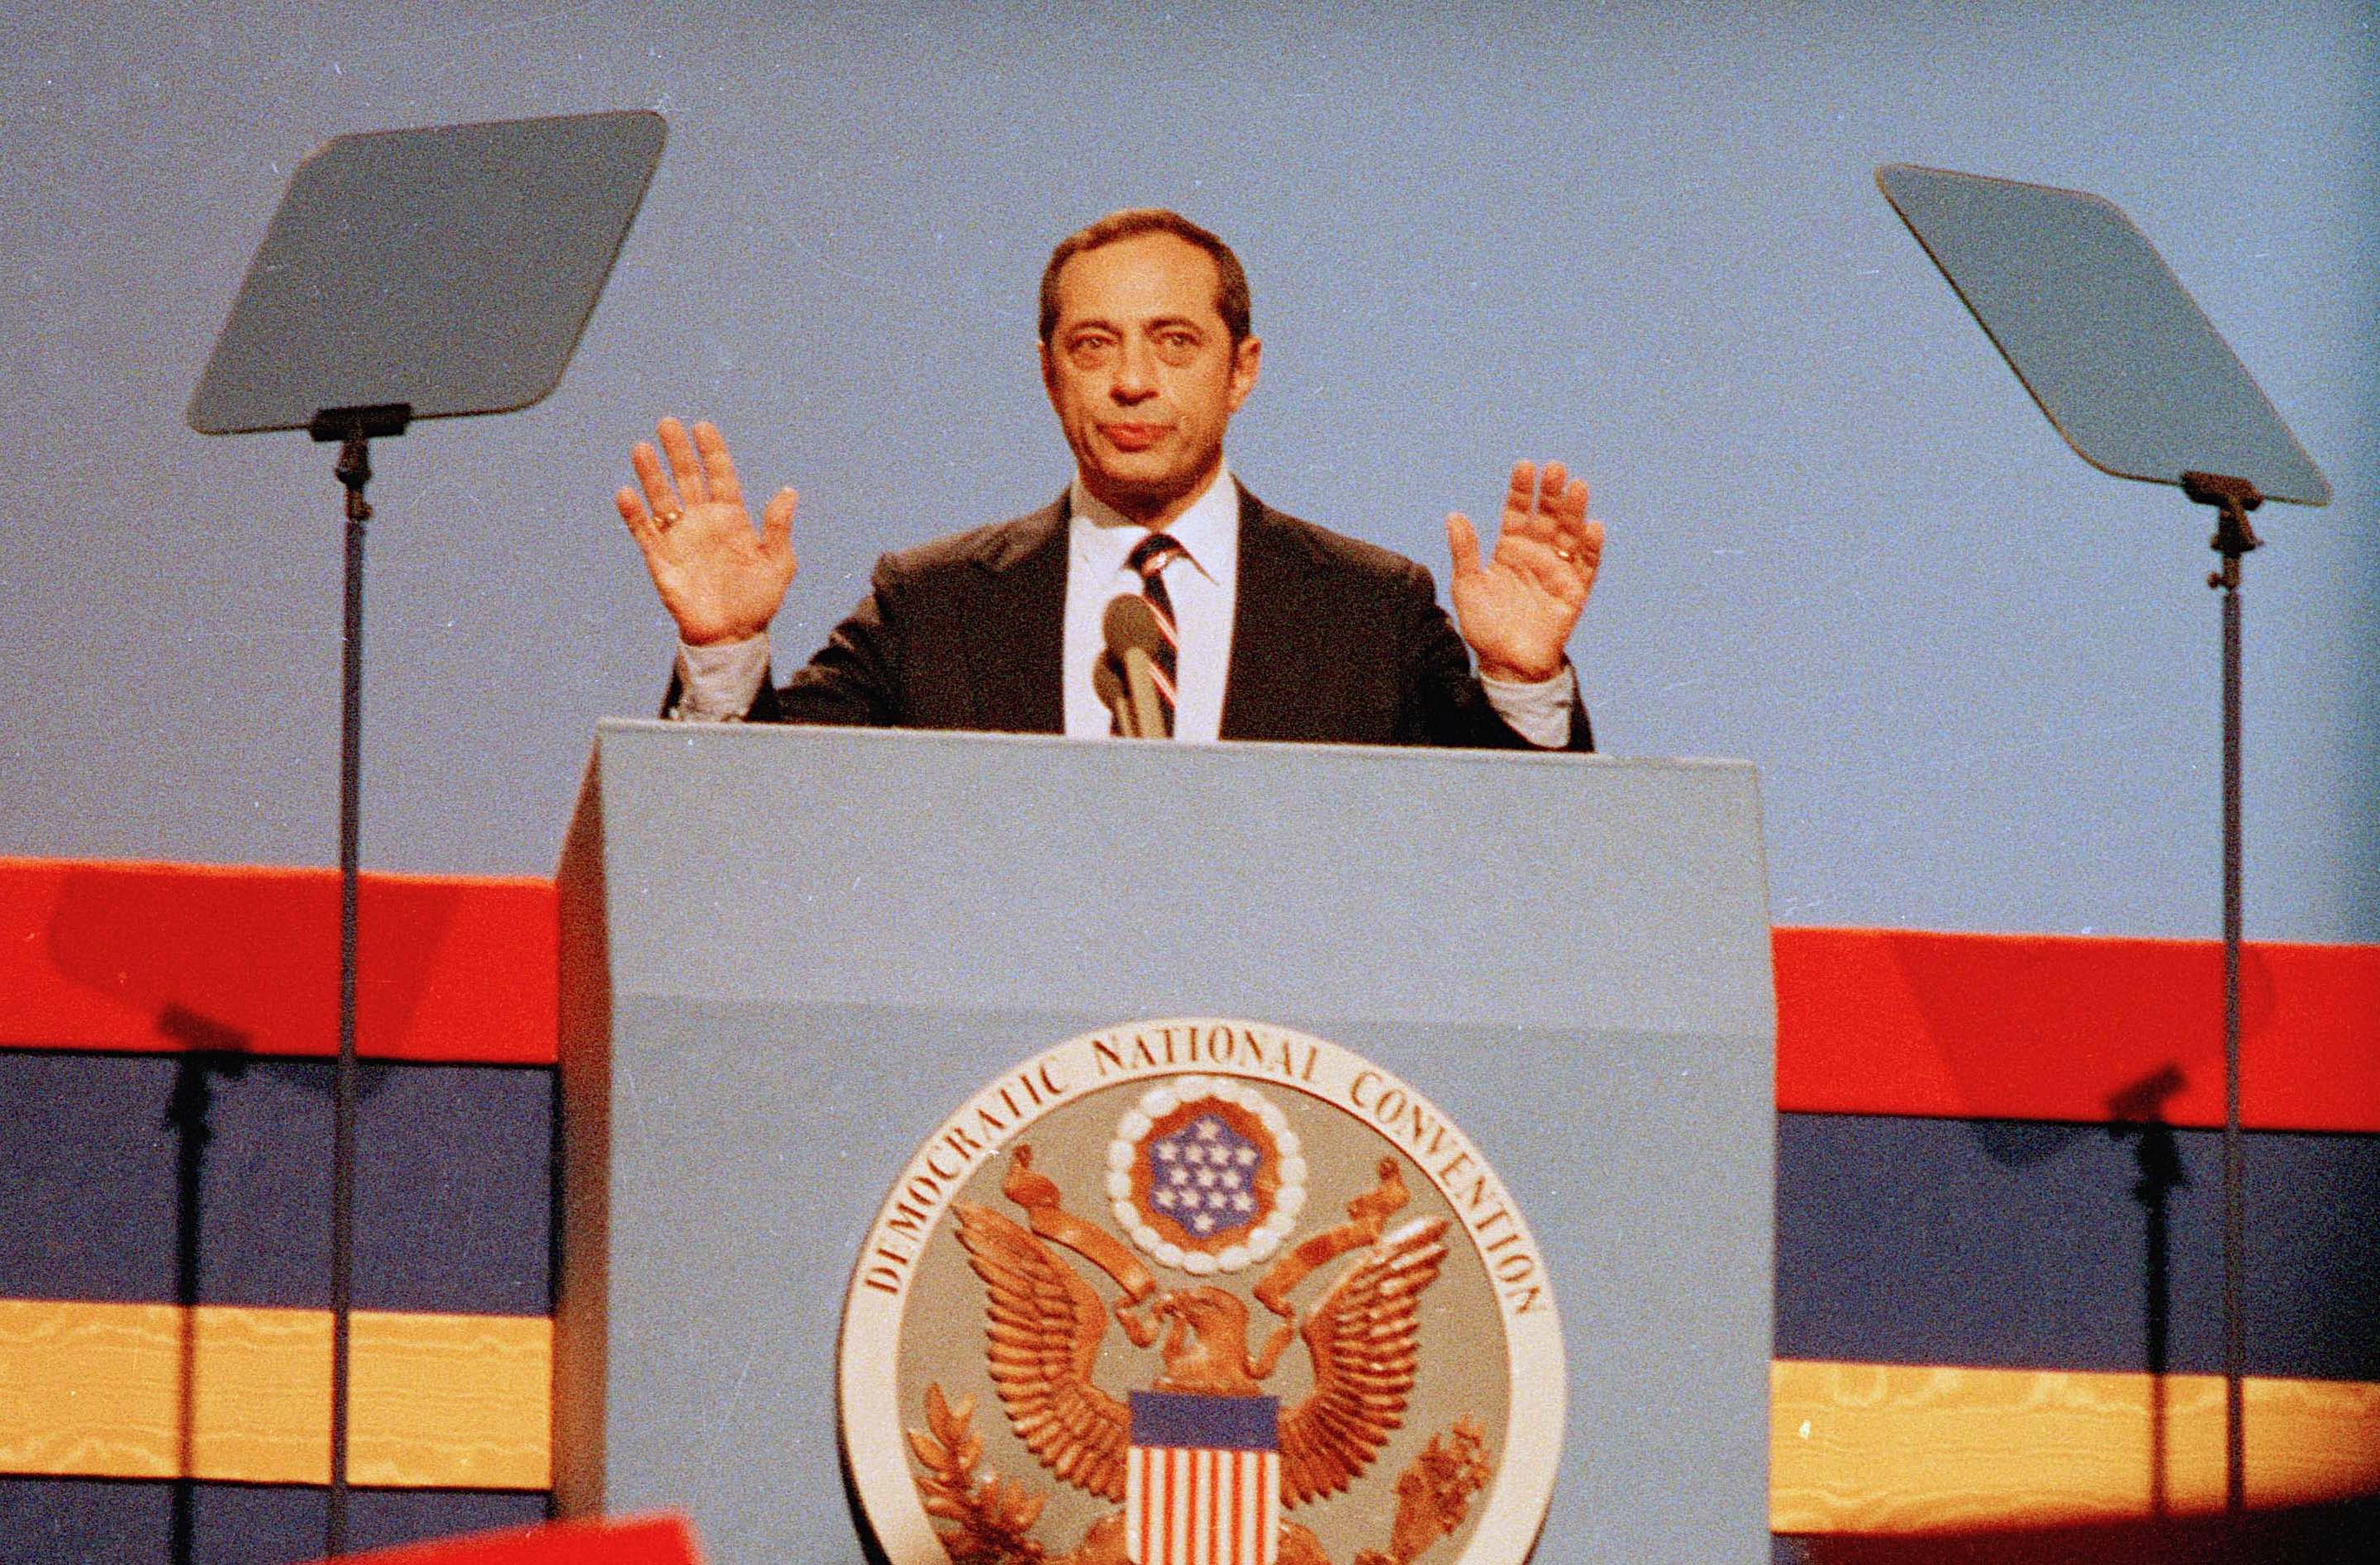 New York Gov. Mario Cuomo delivers his keynote address to the Democratic National Convention on July 16,  1984 in San Francisco's Moscon Center. (AP Photo)